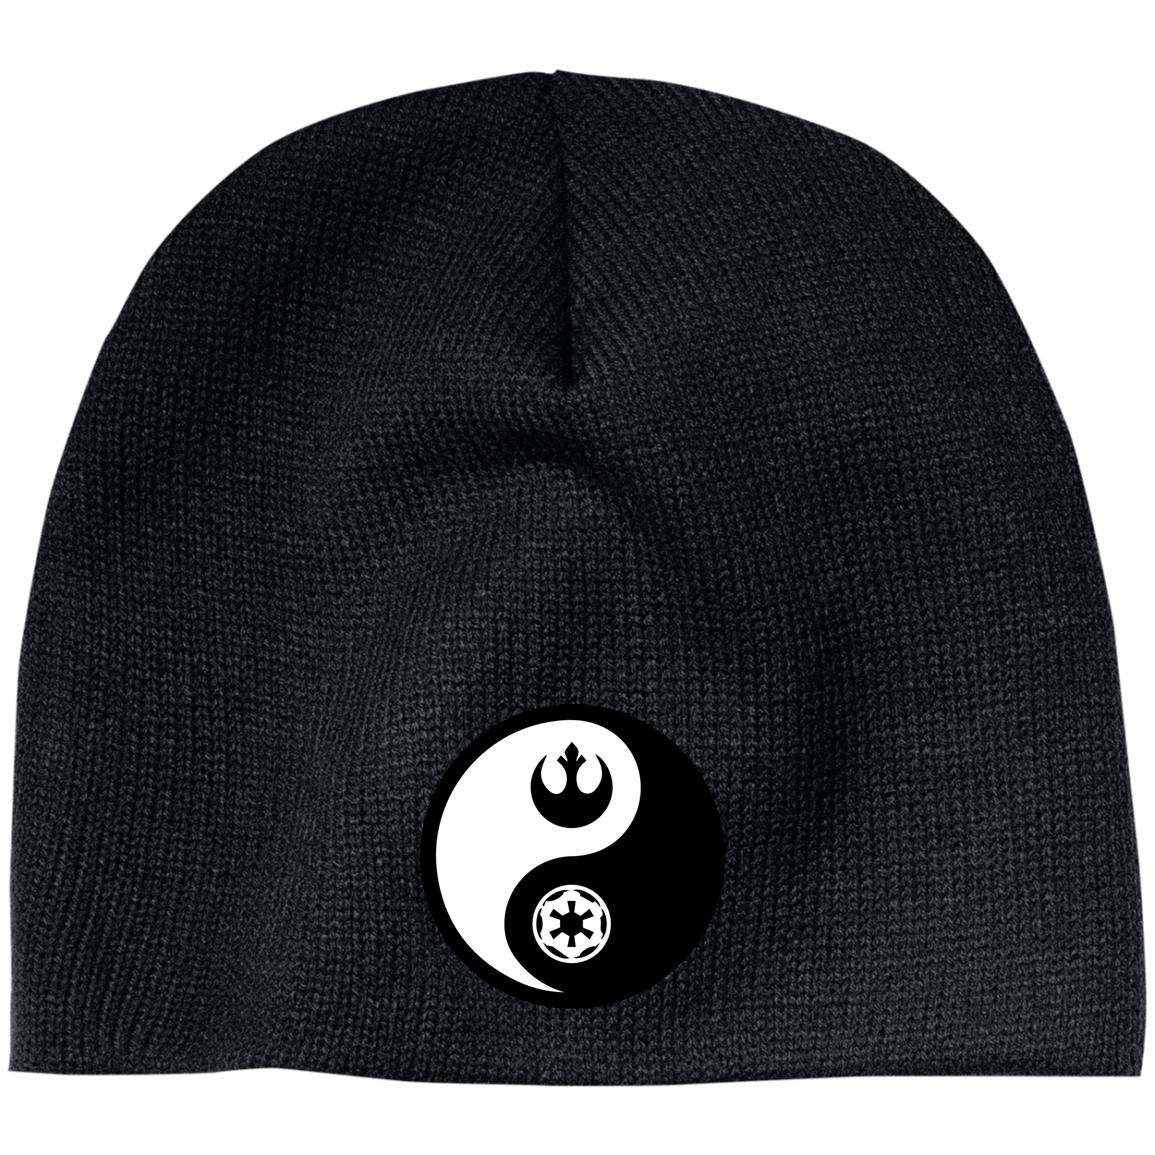 Rebel & Empire Yin Yang -  Embroidered Beanie